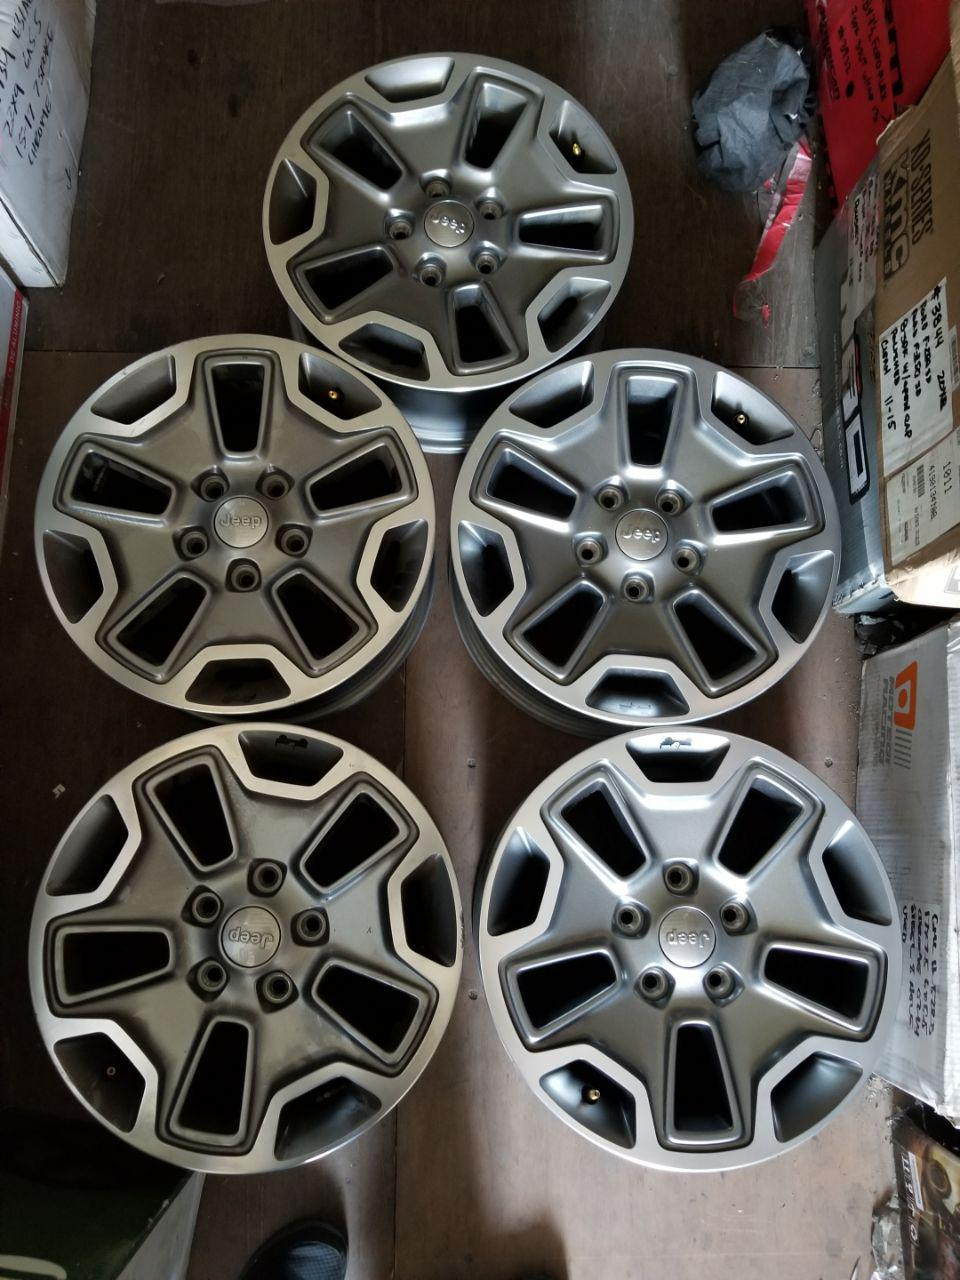 - OEM WHEELS - 2015 JEEP WRANGLER 17x7.5  Hollander #9118 /  USED